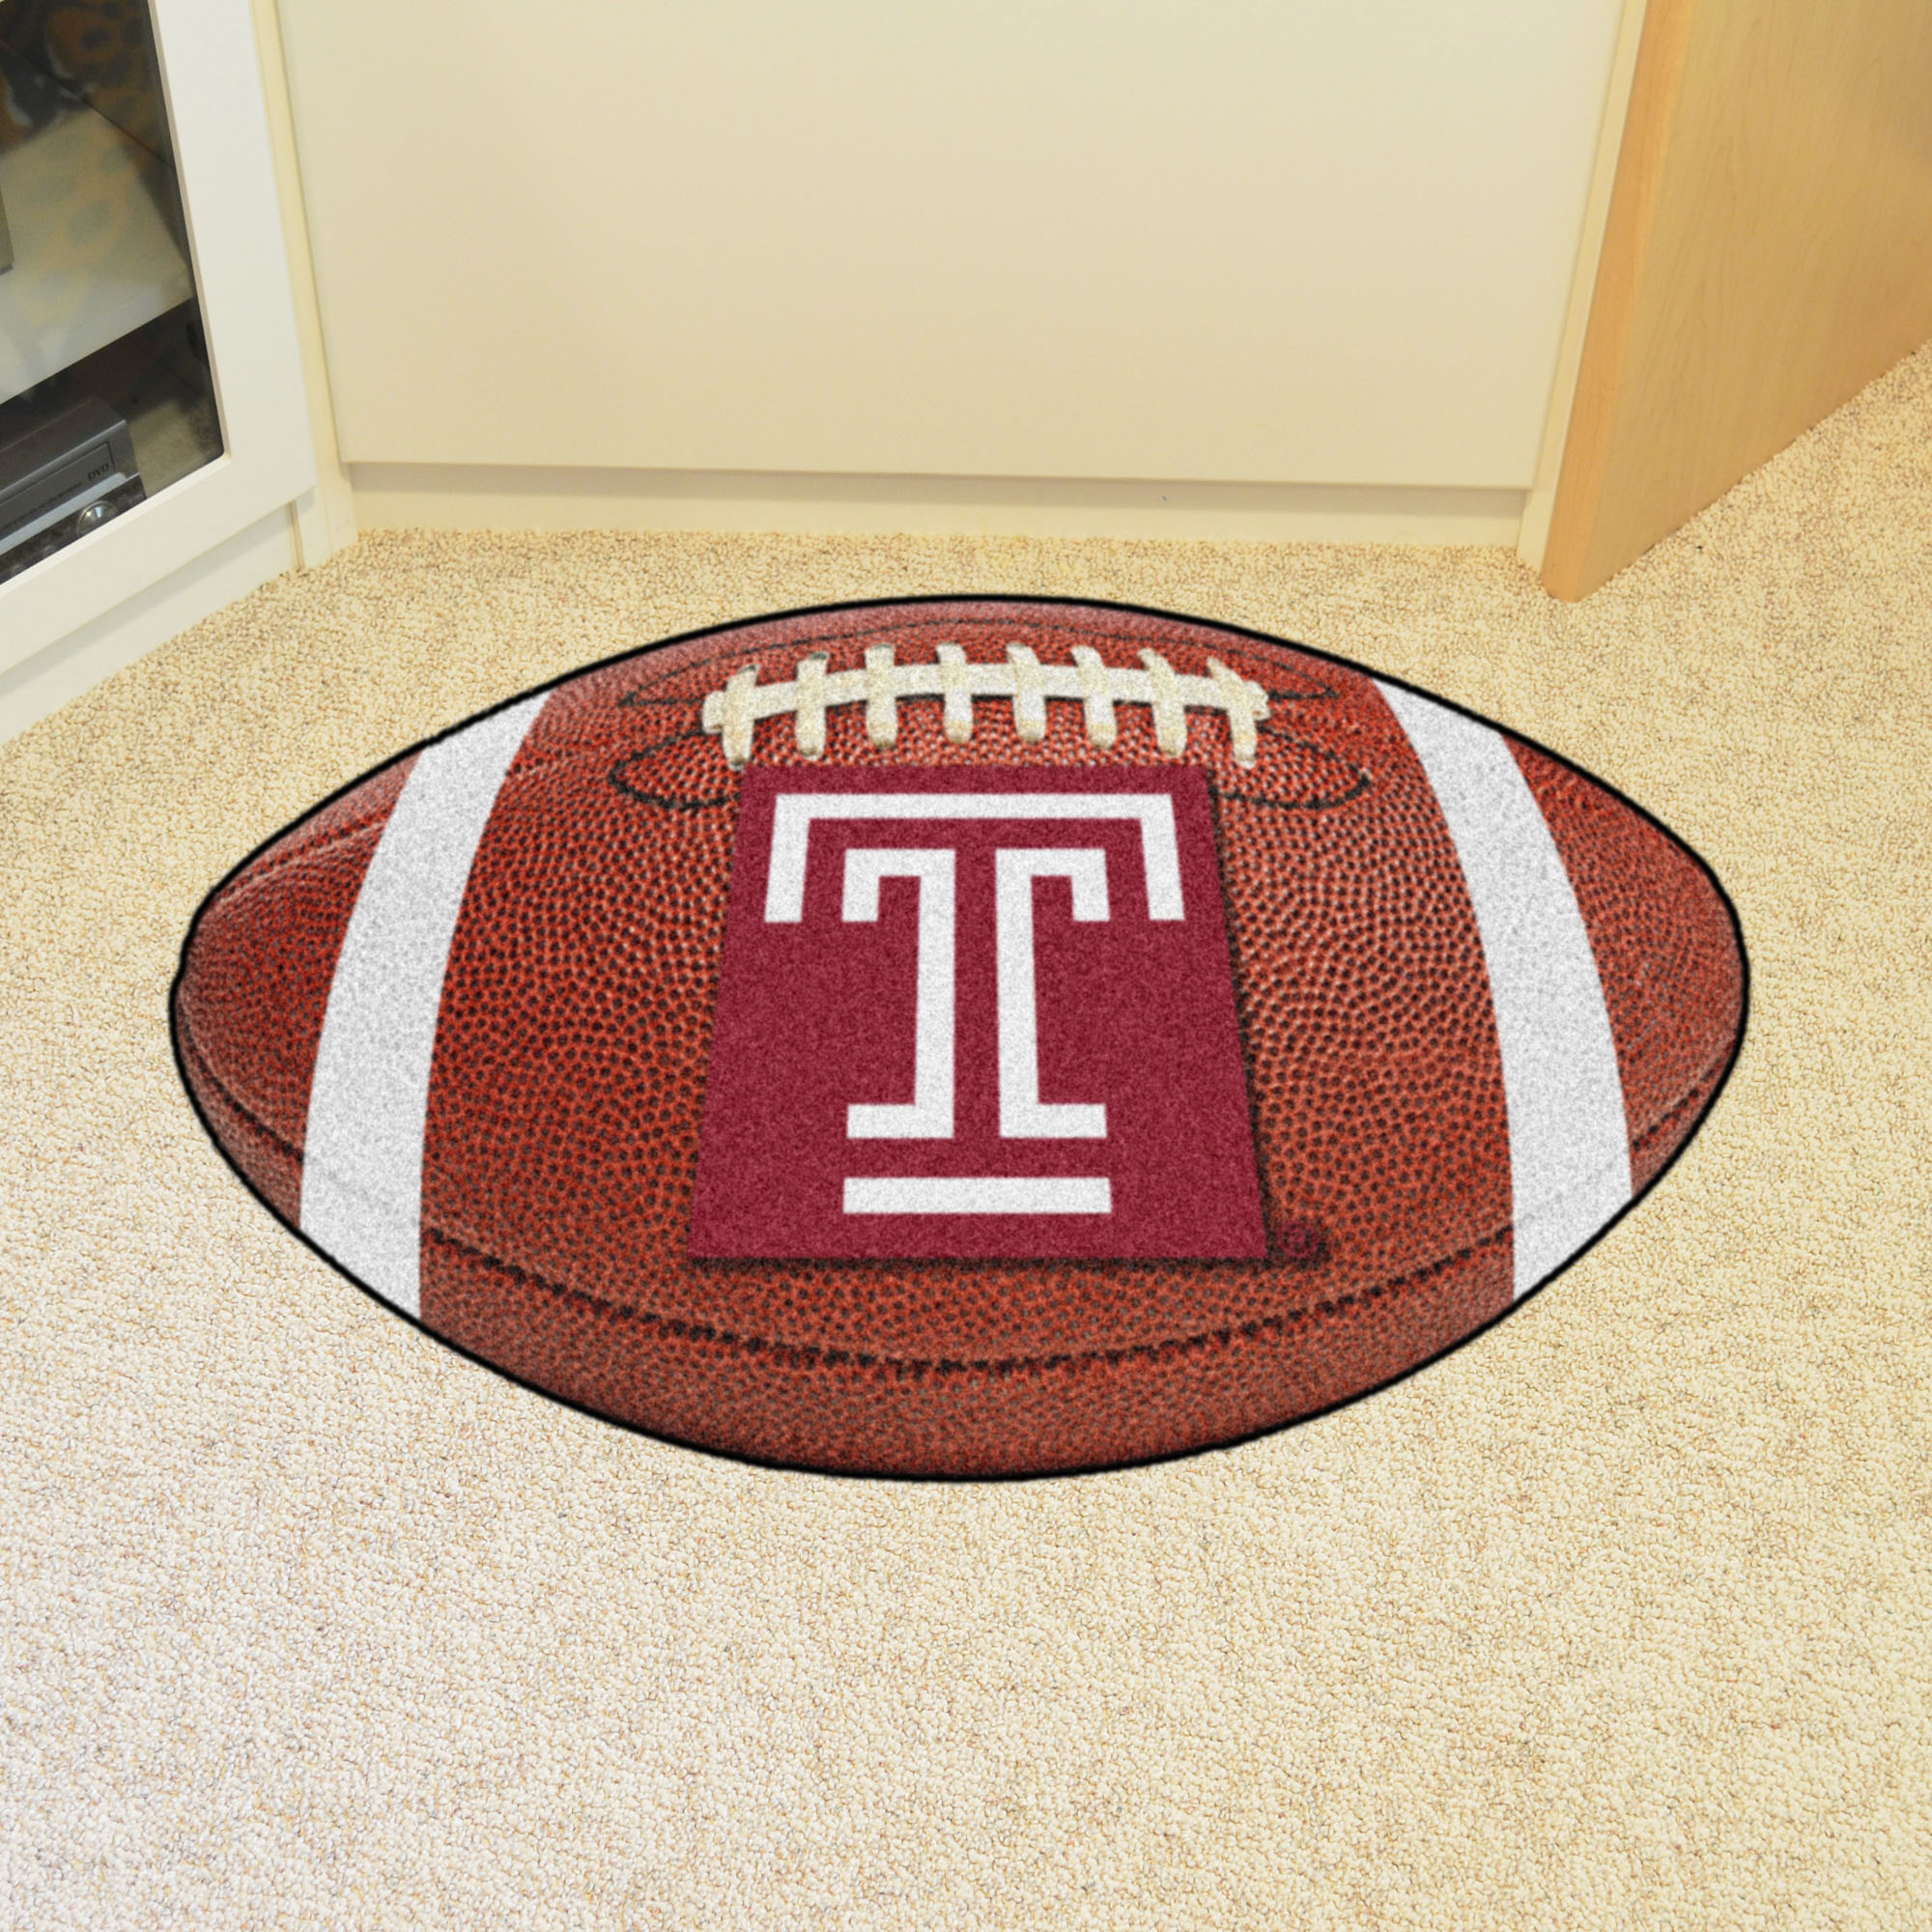 Temple University Ball Shaped Area rugs (Ball Shaped Area Rugs: Football)